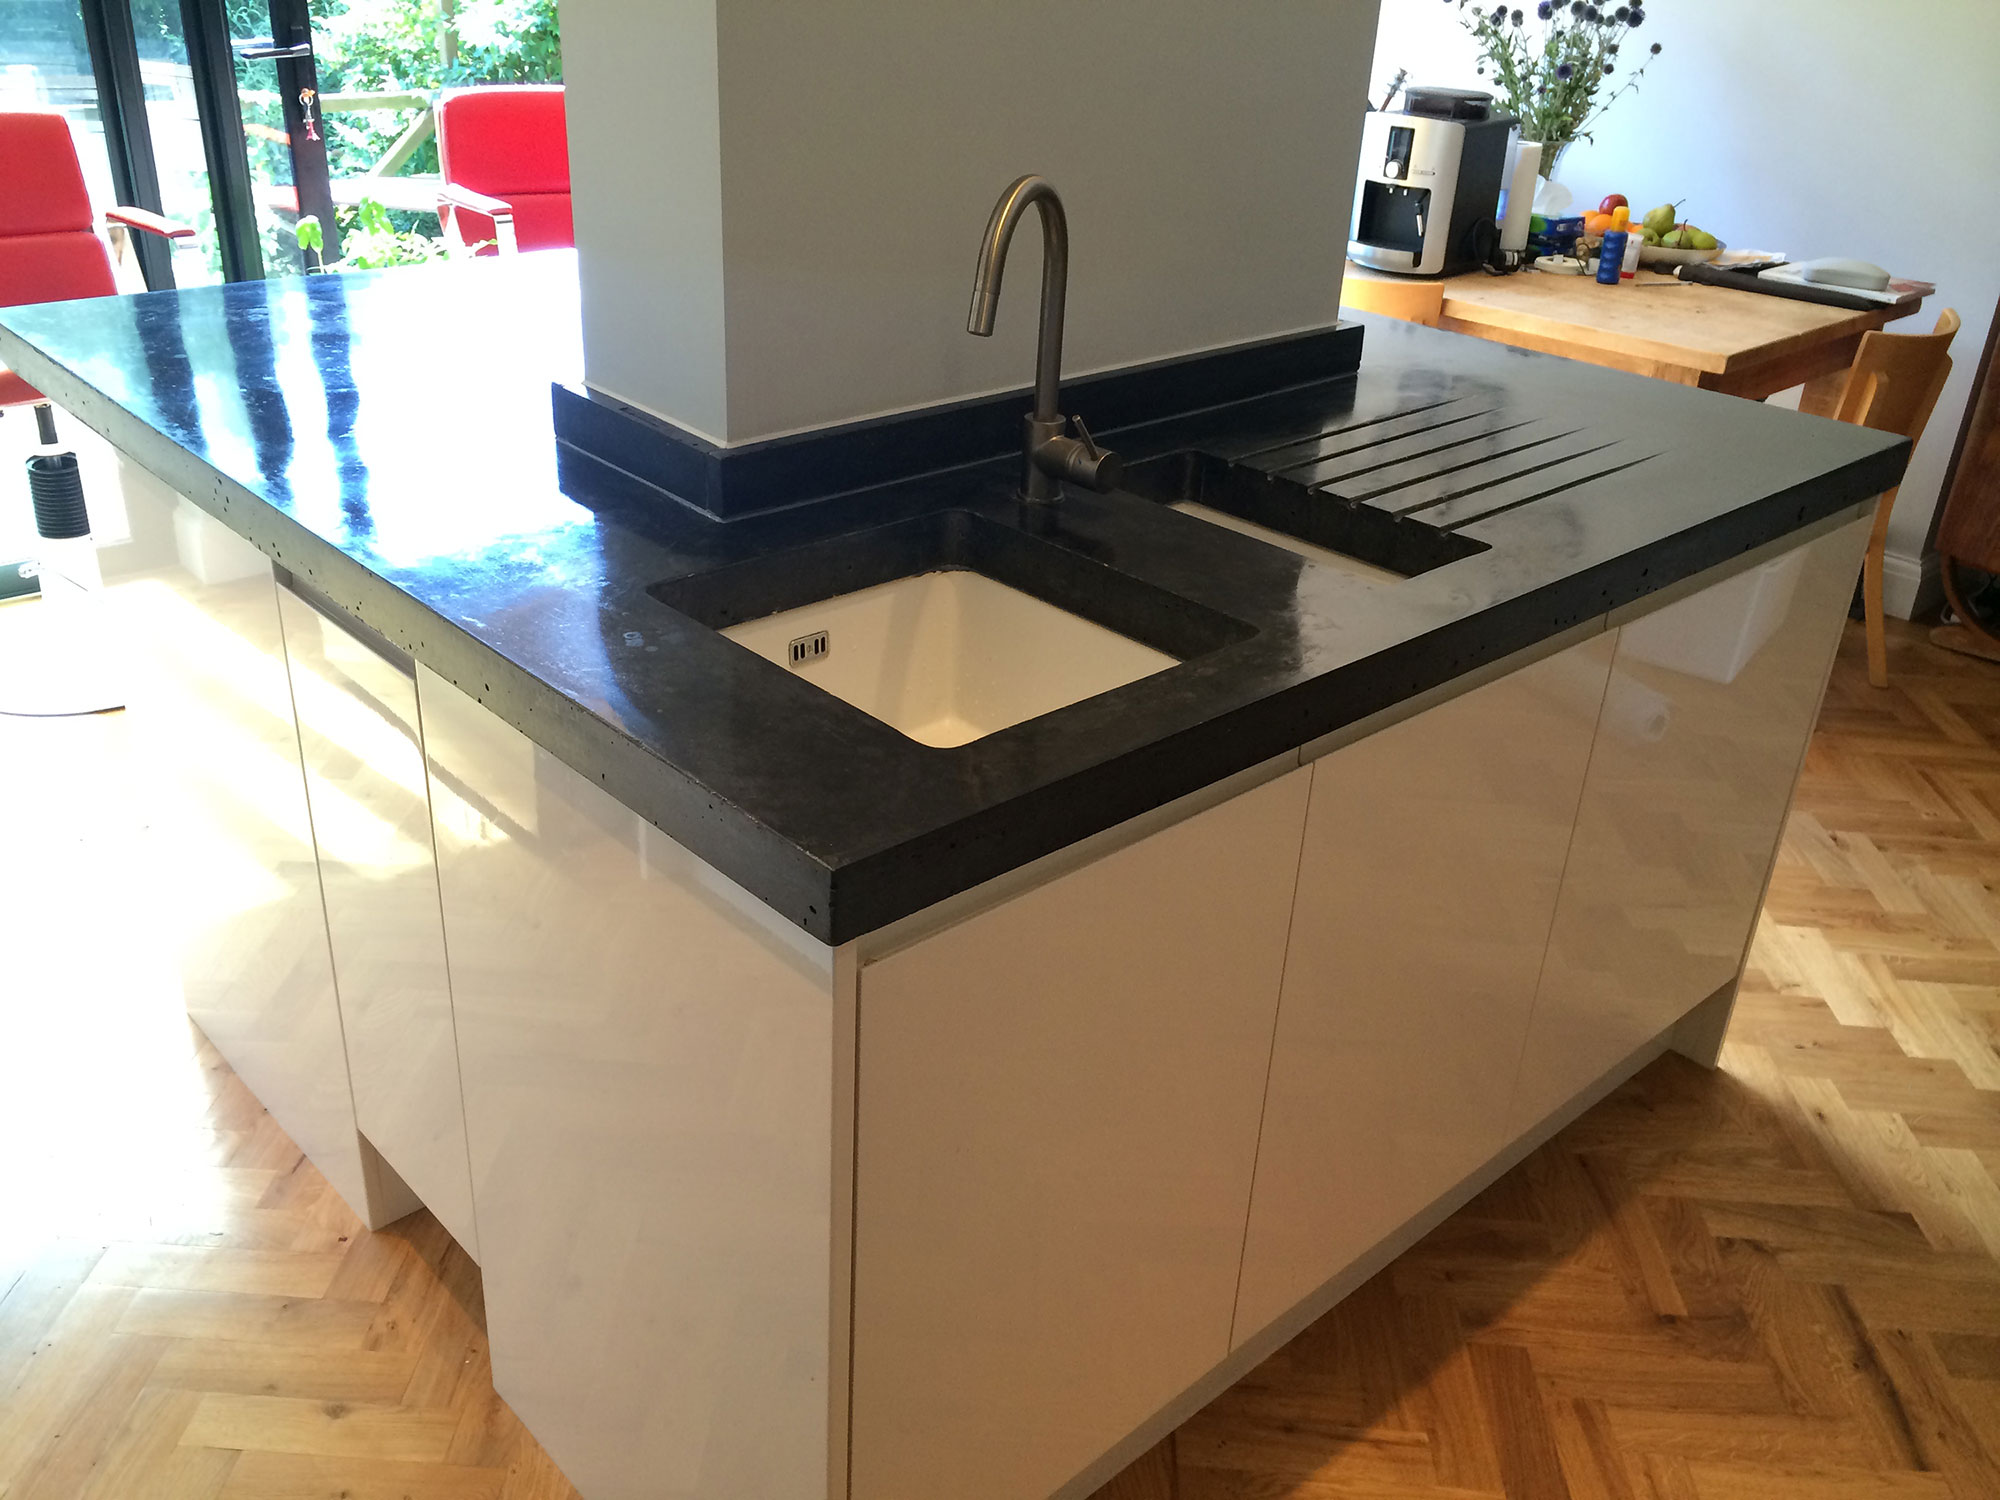 Forest Hill Polished Concrete Kitchen Worktops - IN-SITU CAST ...